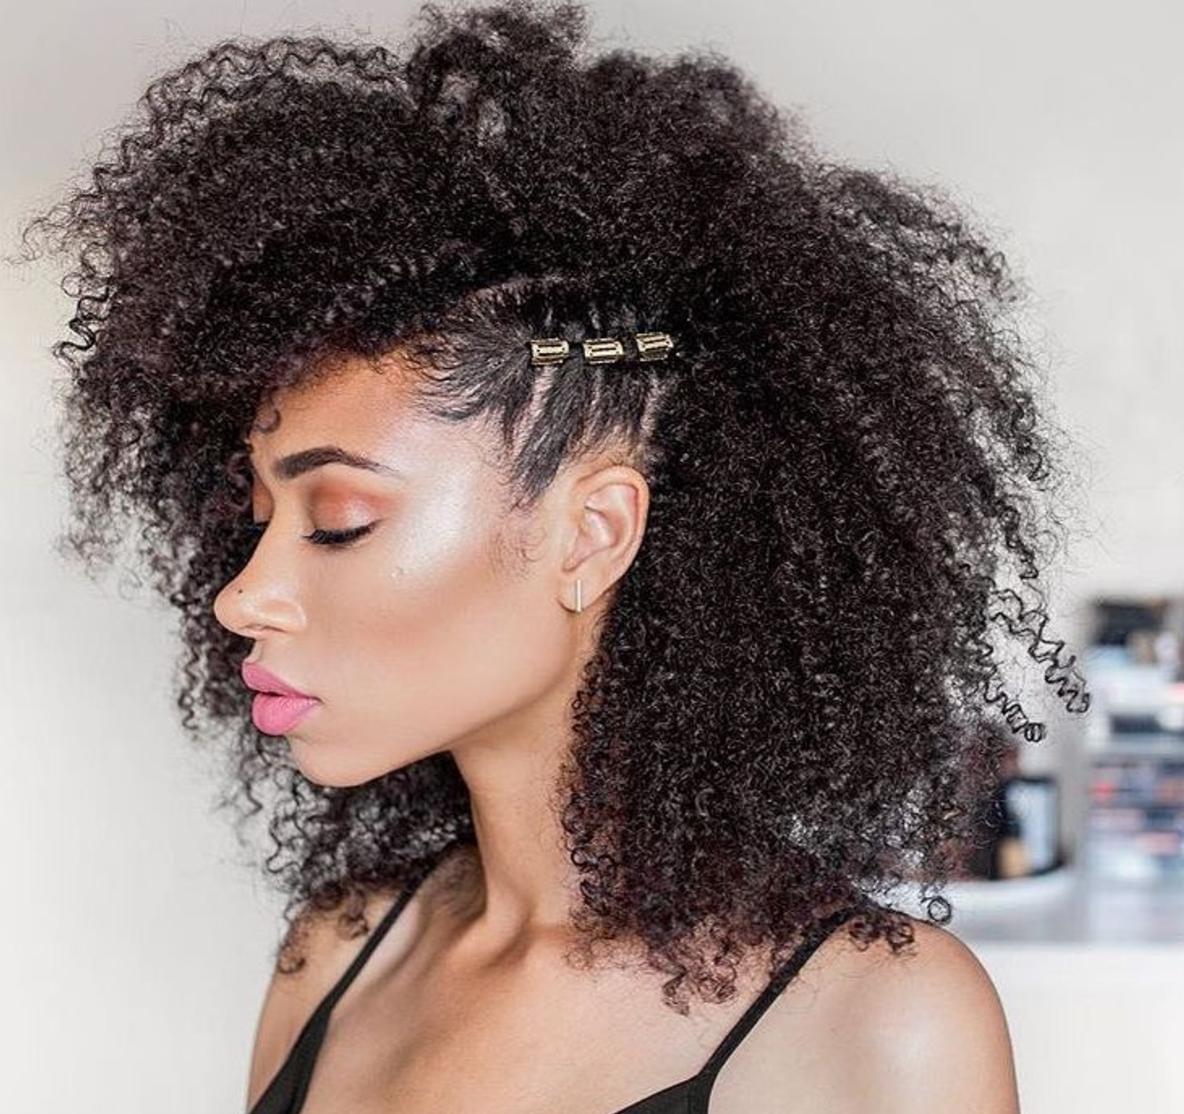 Can Natural Ingredients Cause Scalp Issues